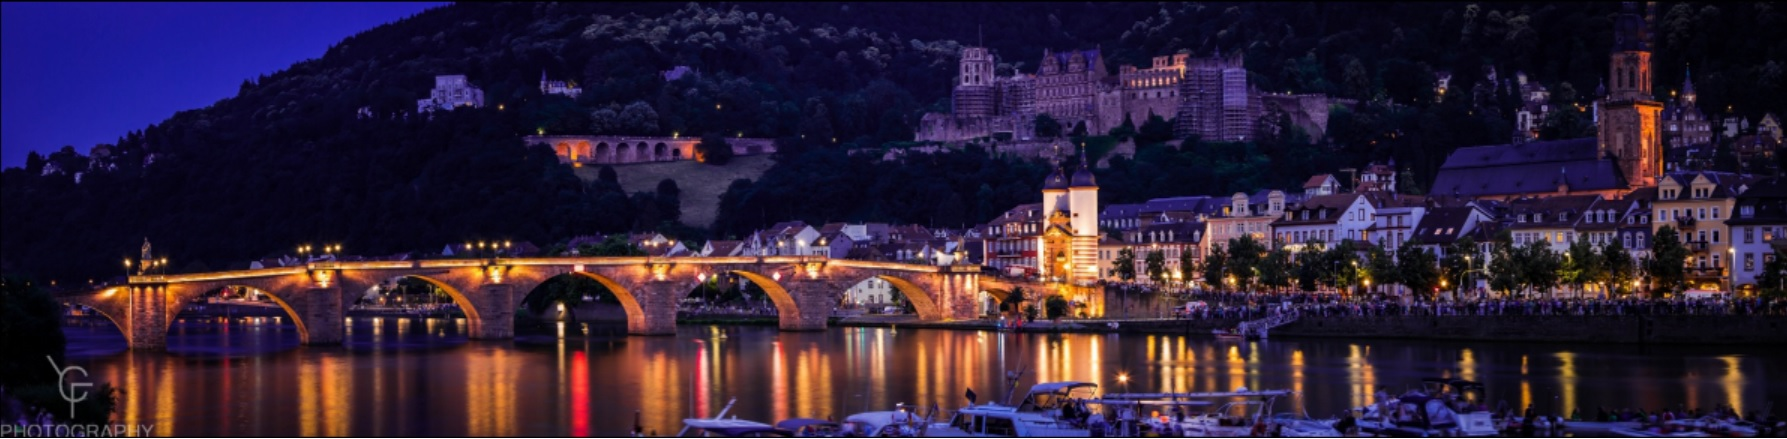 Heidelberg River and Castle, Germany